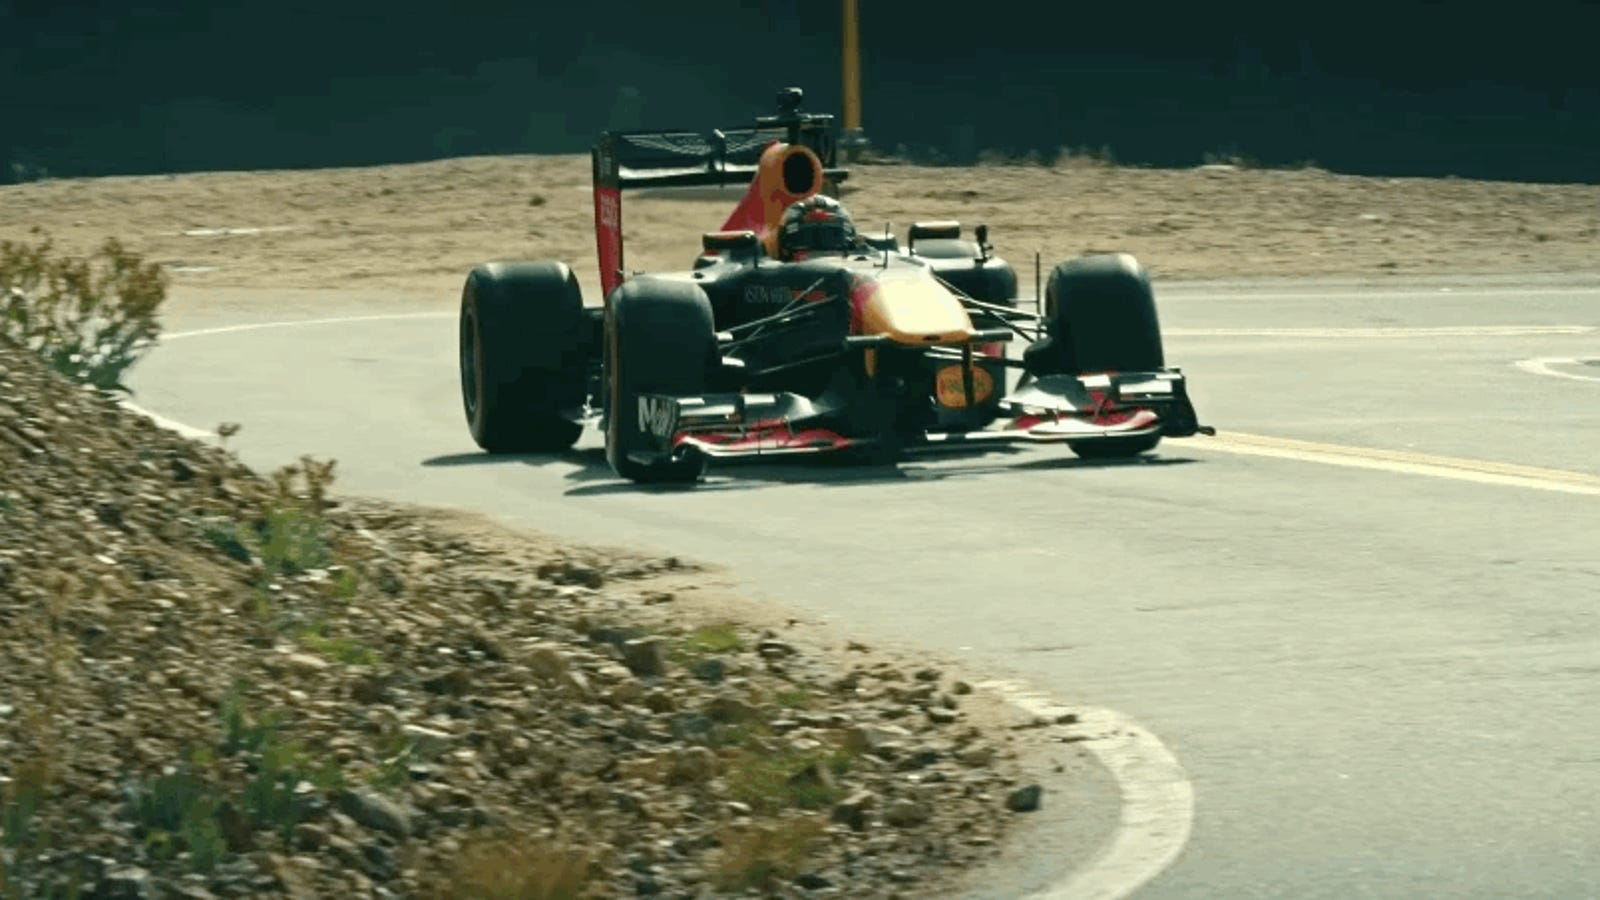 Max Verstappen's F1 Car Road Trip Across America Is Going Great